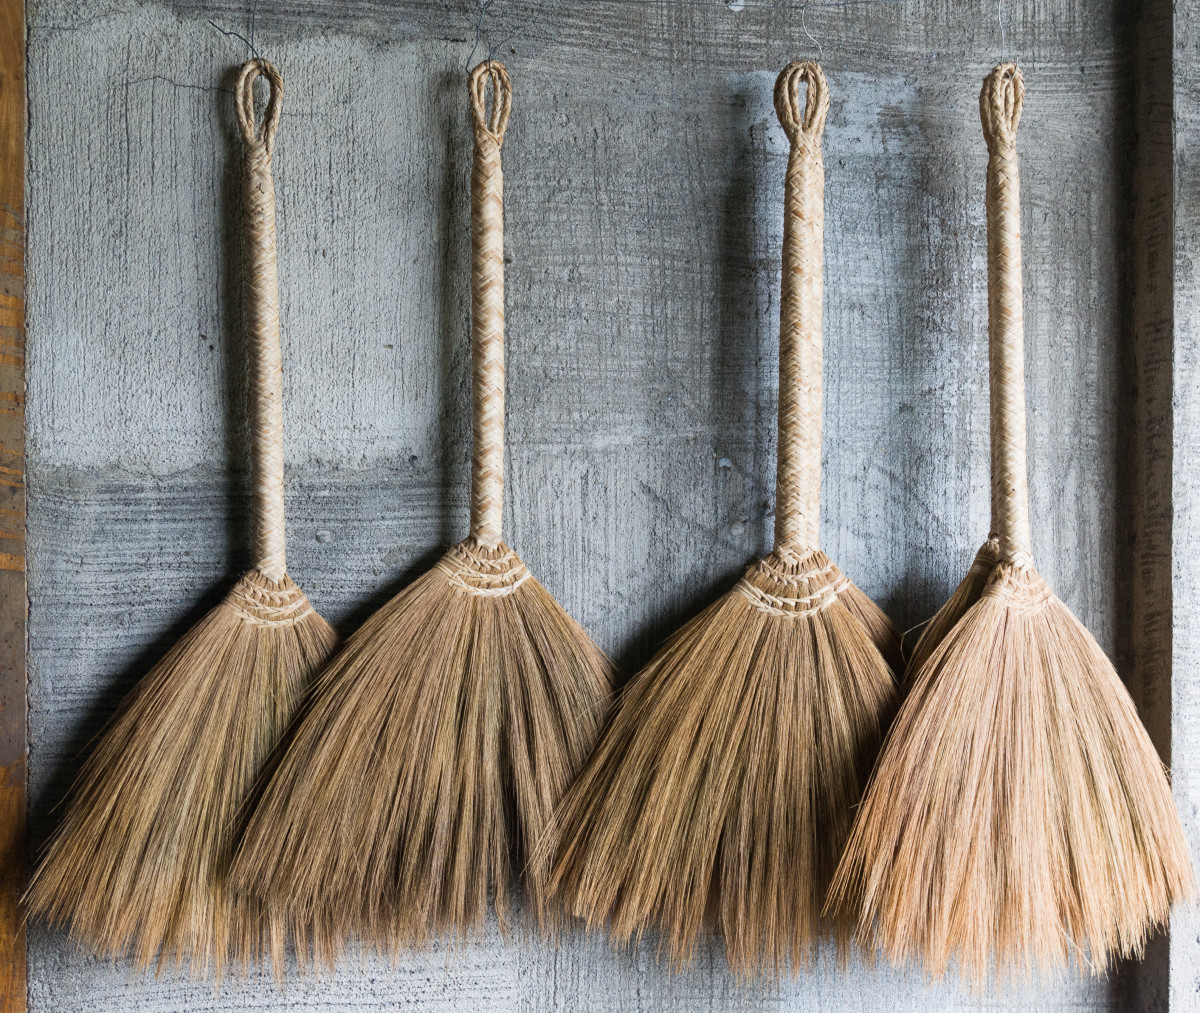 Brooms used as altar tools are usually a bit smaller than their housecleaning counterparts.